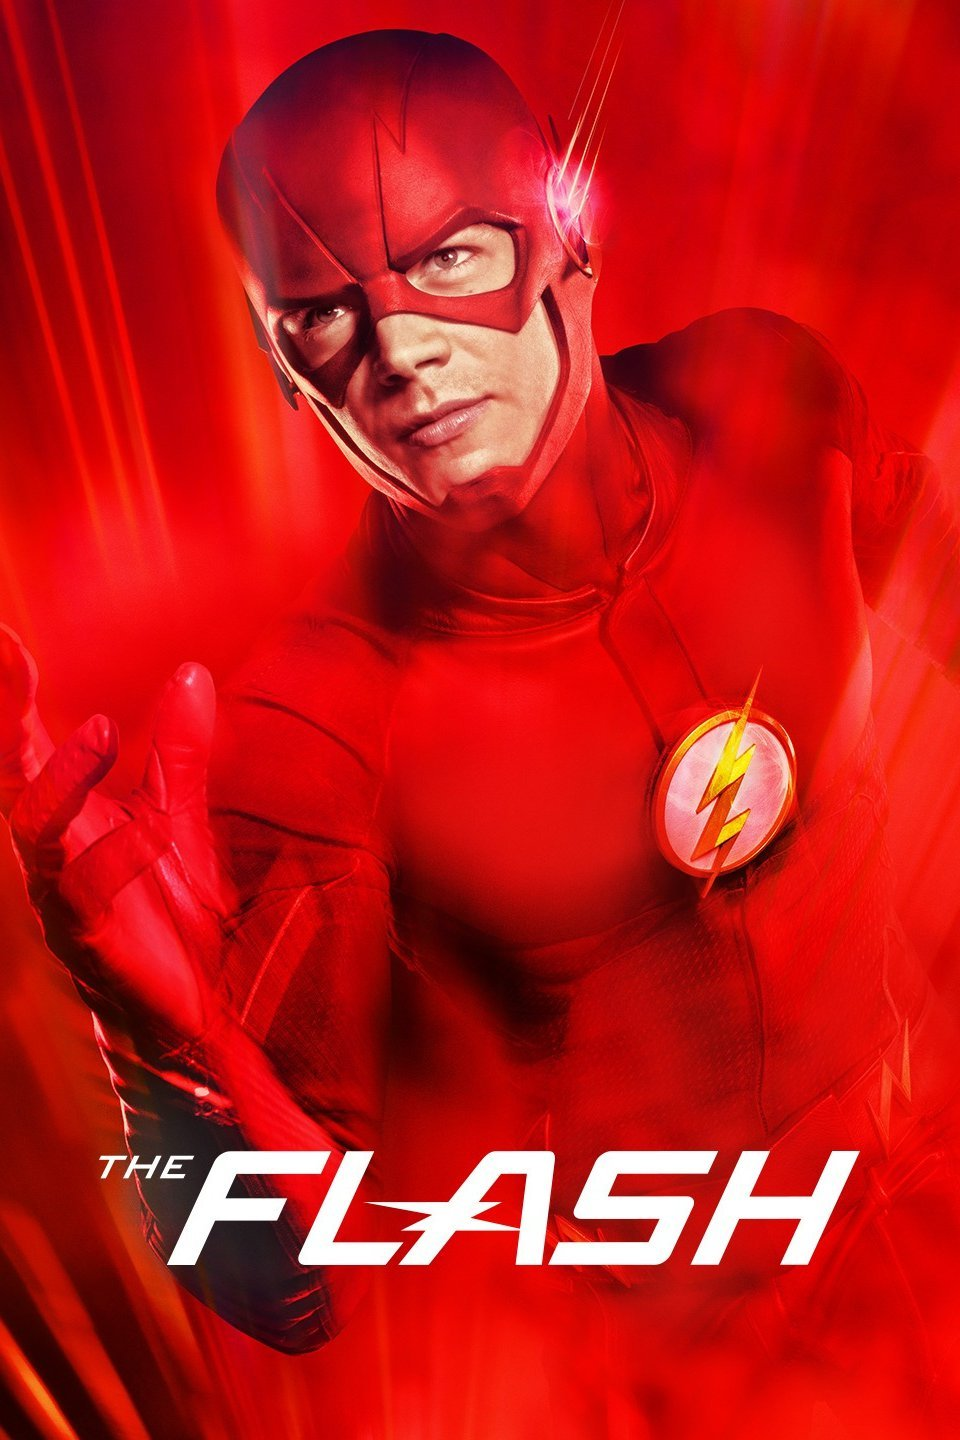 The Flash 3 Episode 1 (Flashpoint)